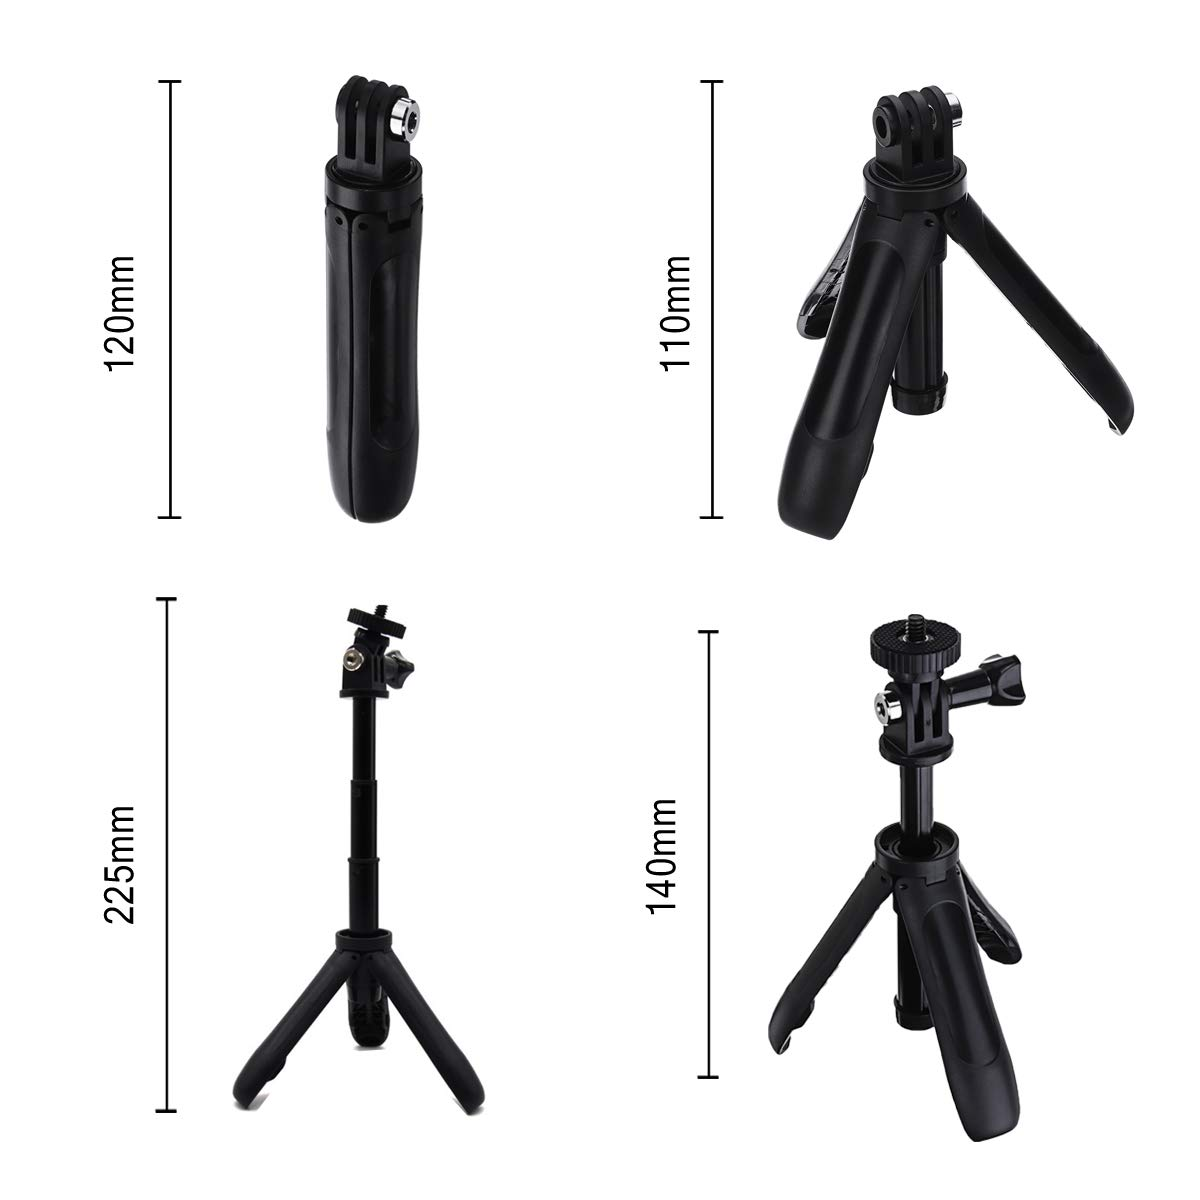 Mini Tripod for GoPro, Homeet 2-in-1 Action Camera Selfie Stick and Tabletop Tripod Portable Adjustable Selfie Pole for GoPro/SJCAM/Akaso/Garmin Virb/DBPOWER/YI/QUMOX/Rollei Sport Camera